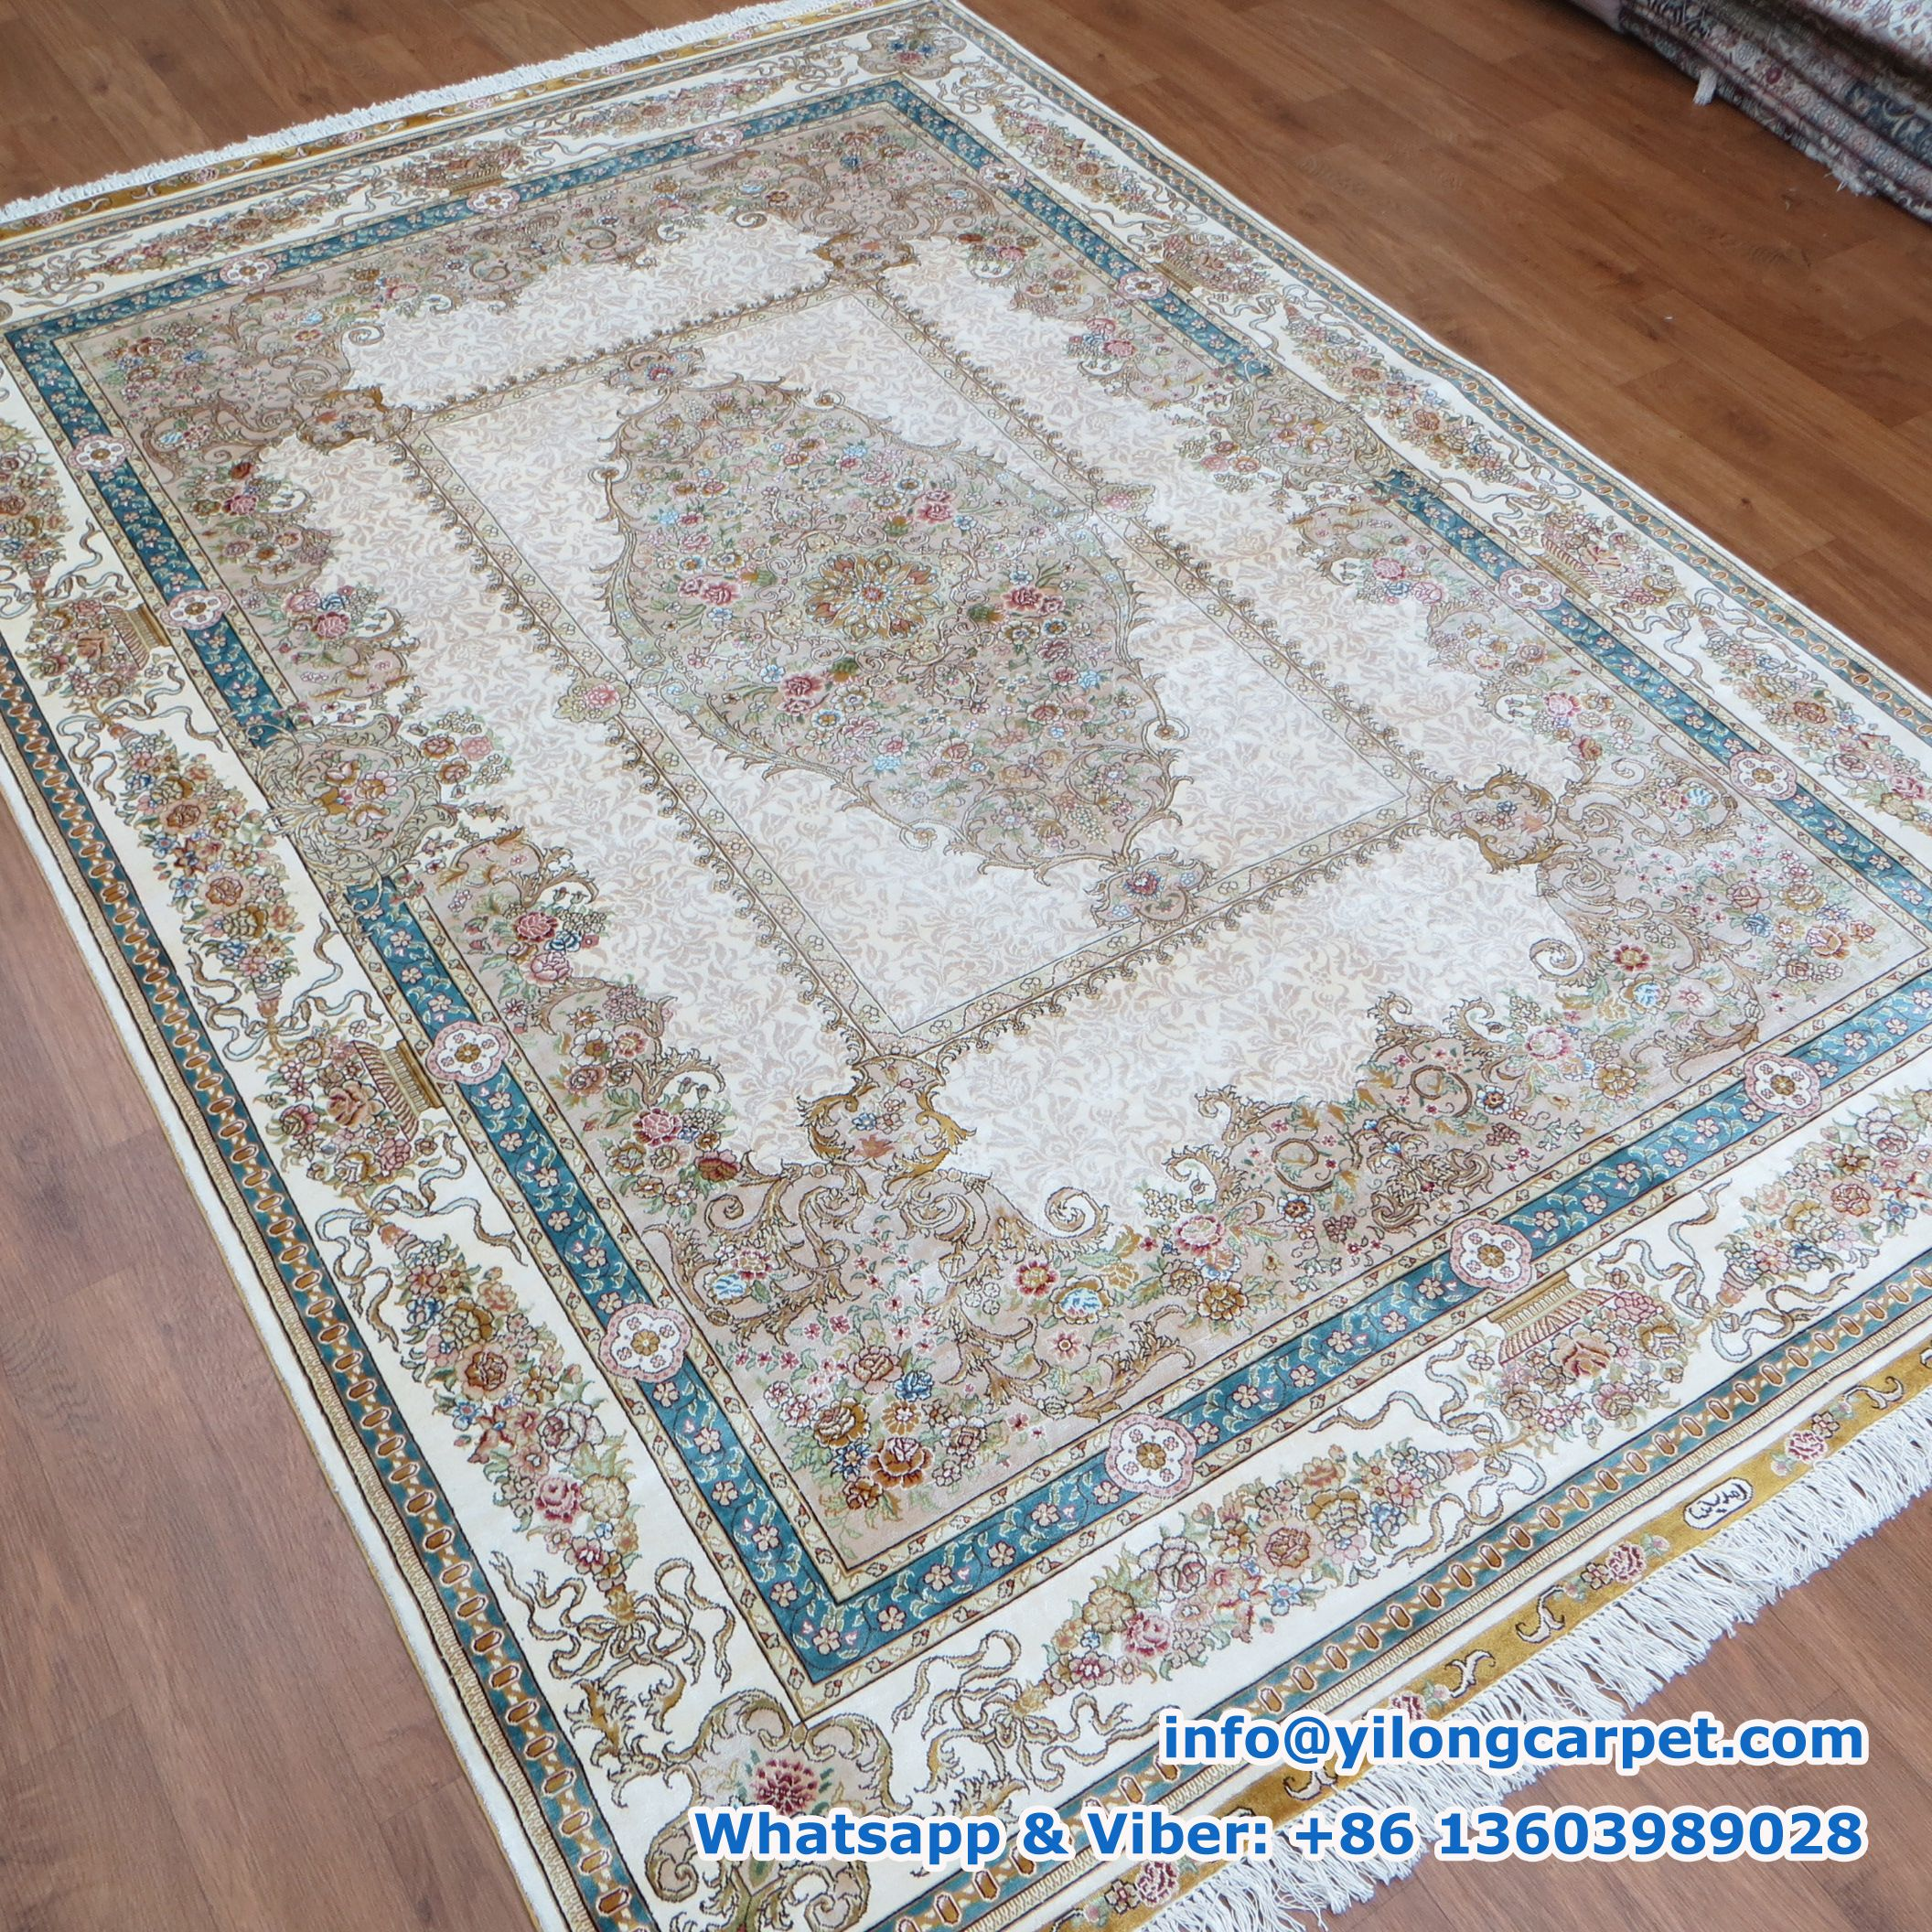 A06 5 5 X8 Hand Knotted Silk Turkish Rug Offered By Yilong Description Medallion Design In The Middle Of White Base Blue Bor Rugs On Carpet Silk Carpet Rugs